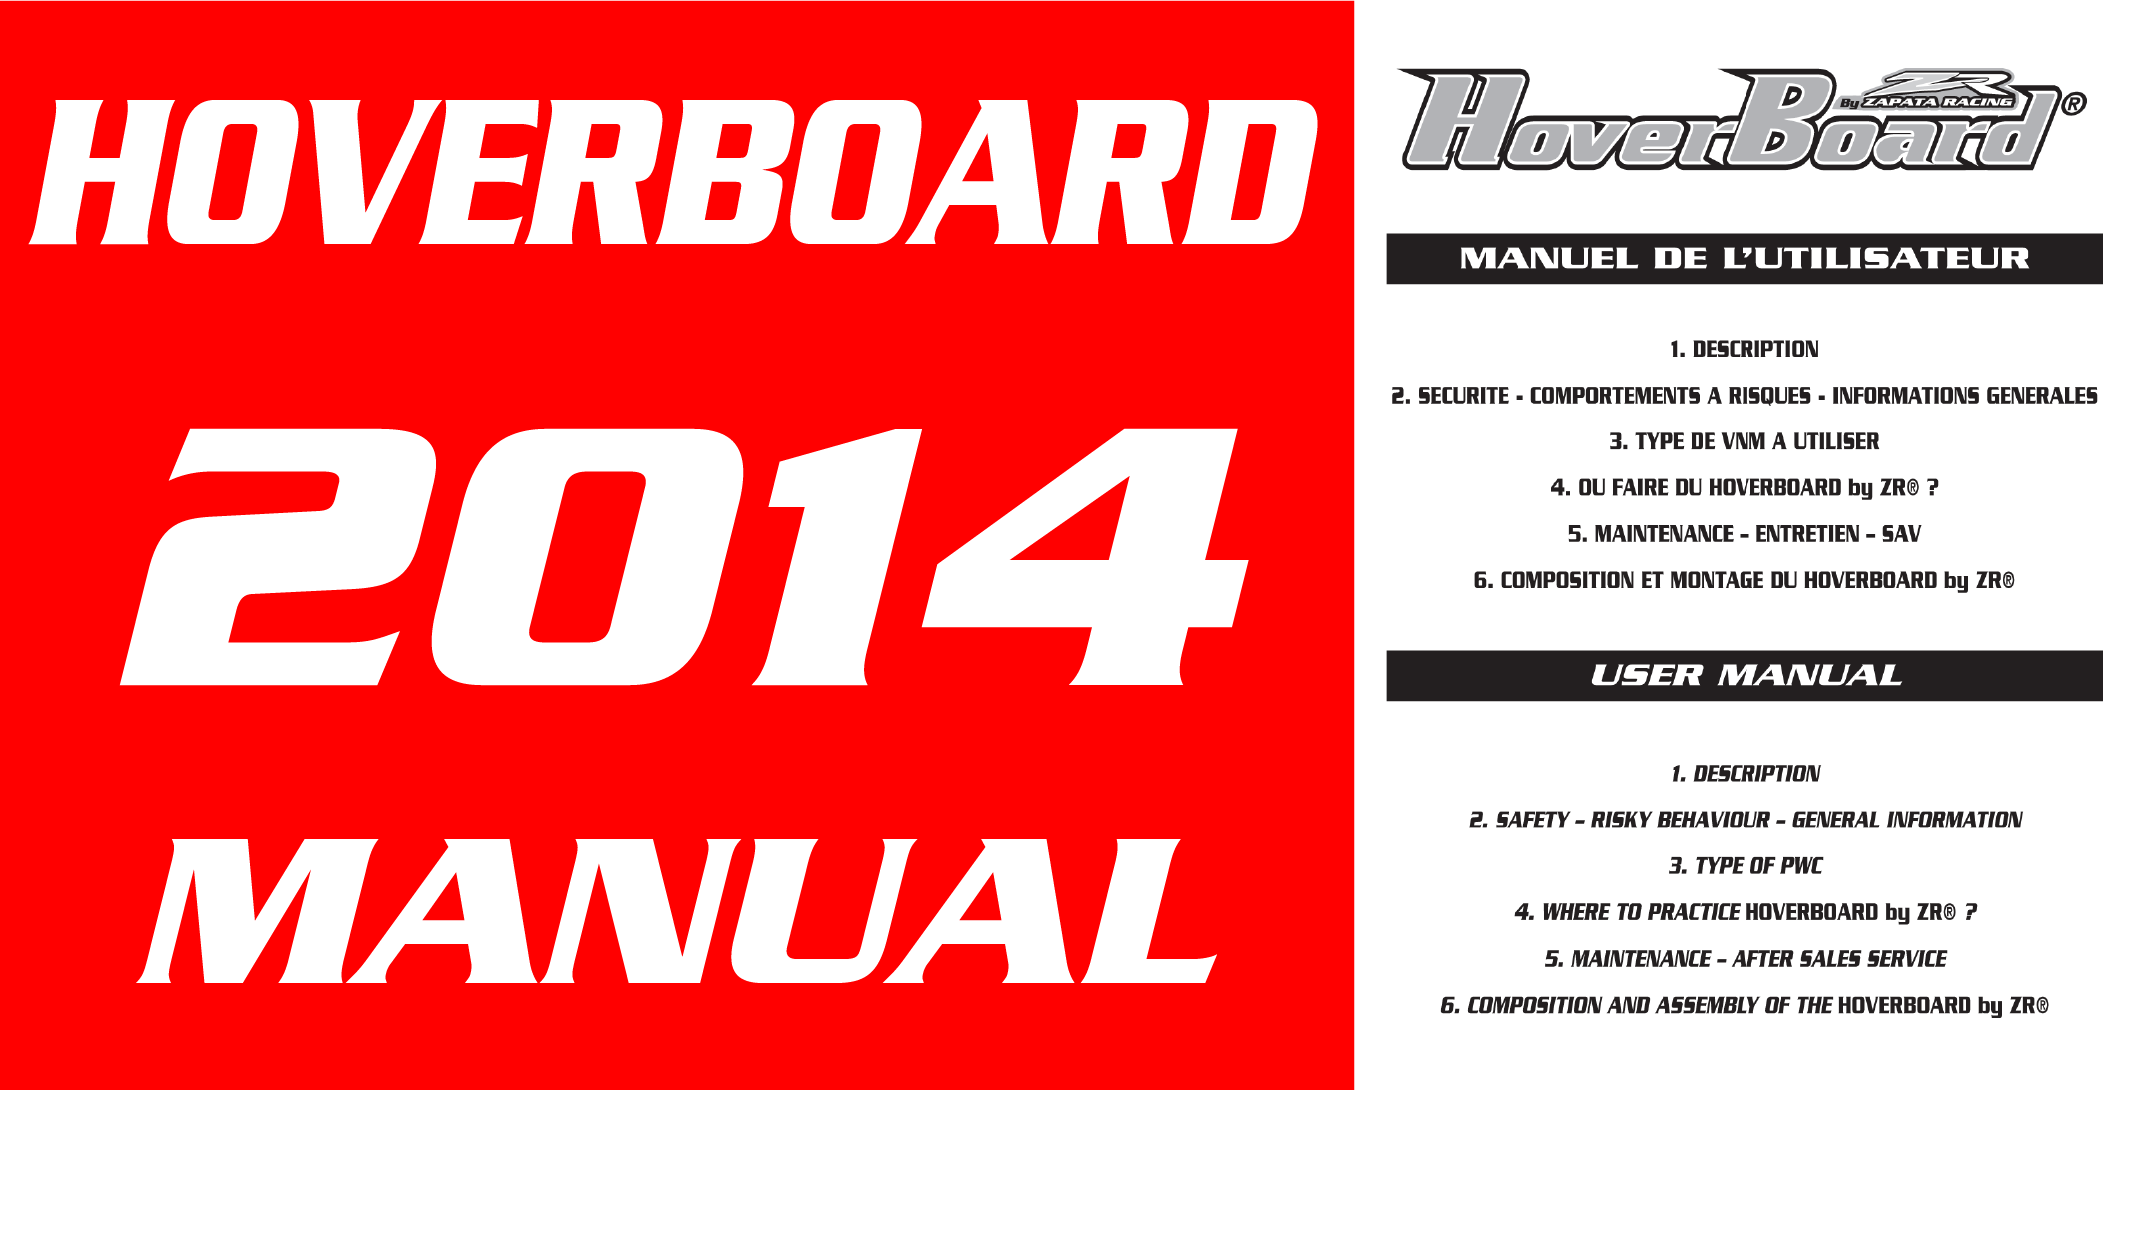 Hoverboard V1 2014 Manual Download